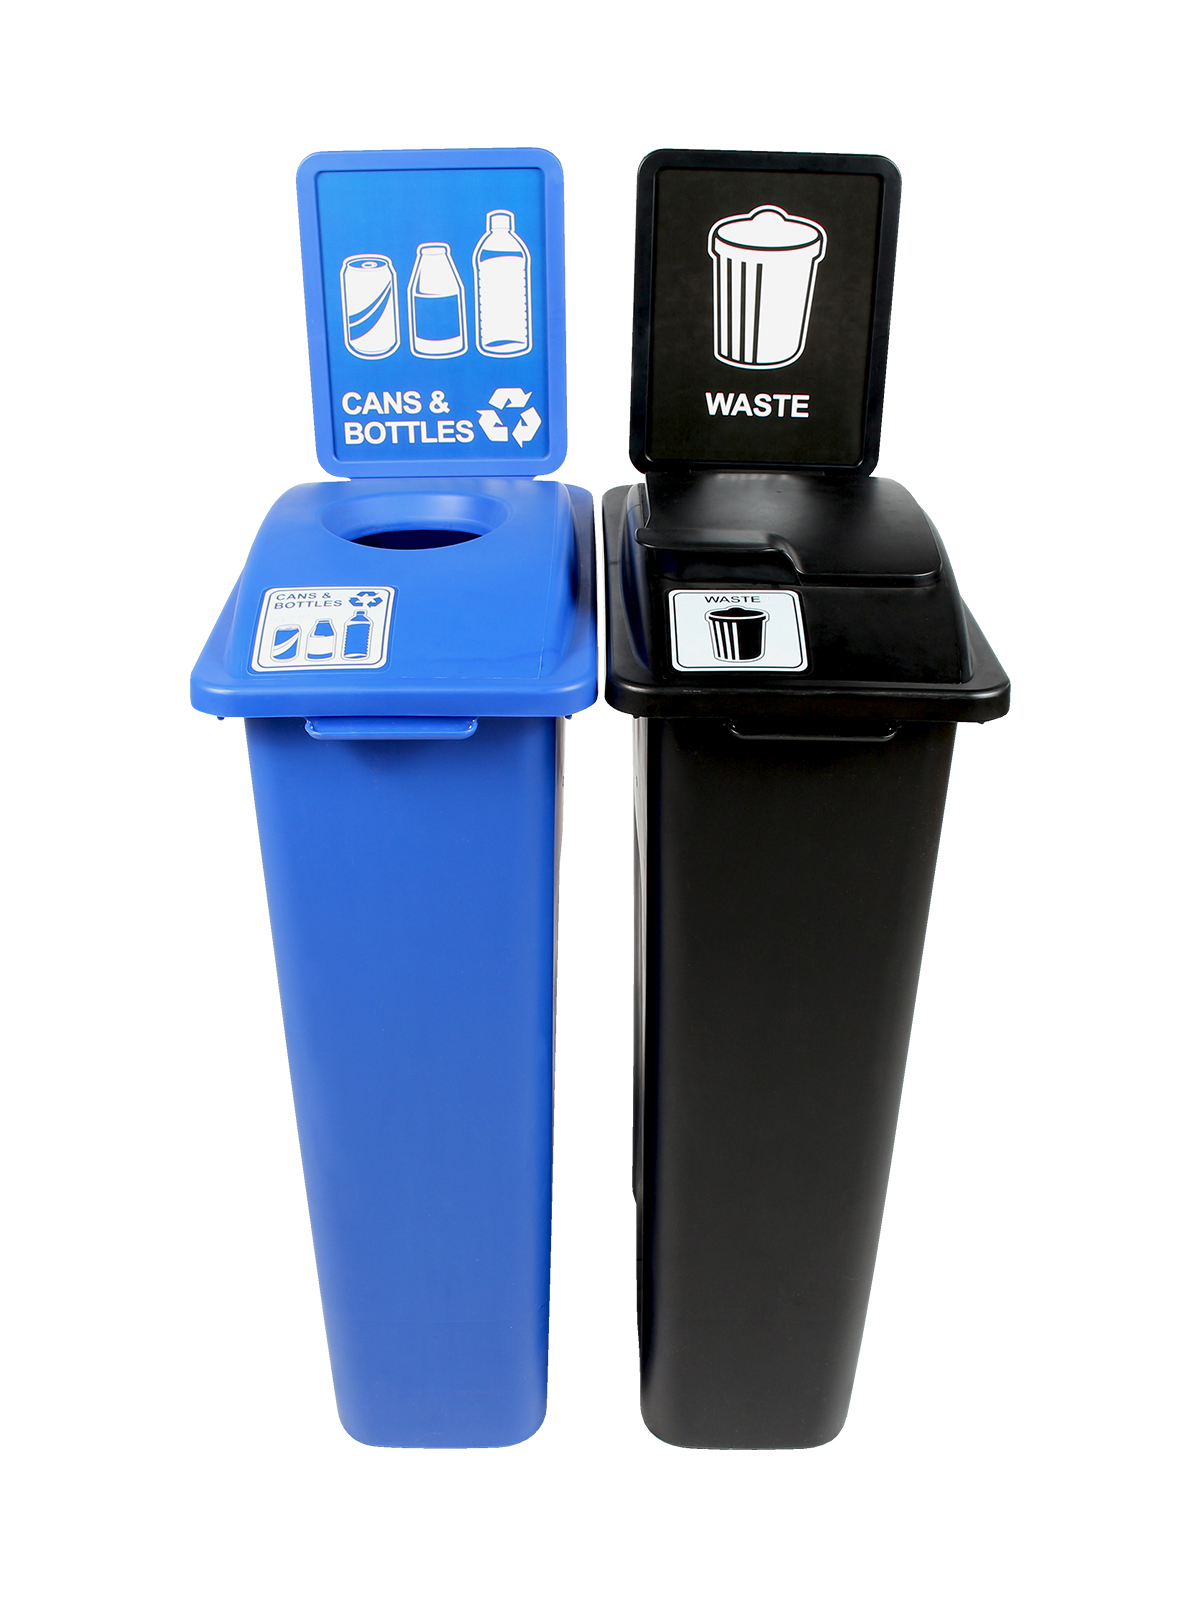 WASTE WATCHER - Double - Cans & Bottles-Waste - Circle-Solid Lift - Blue-Black